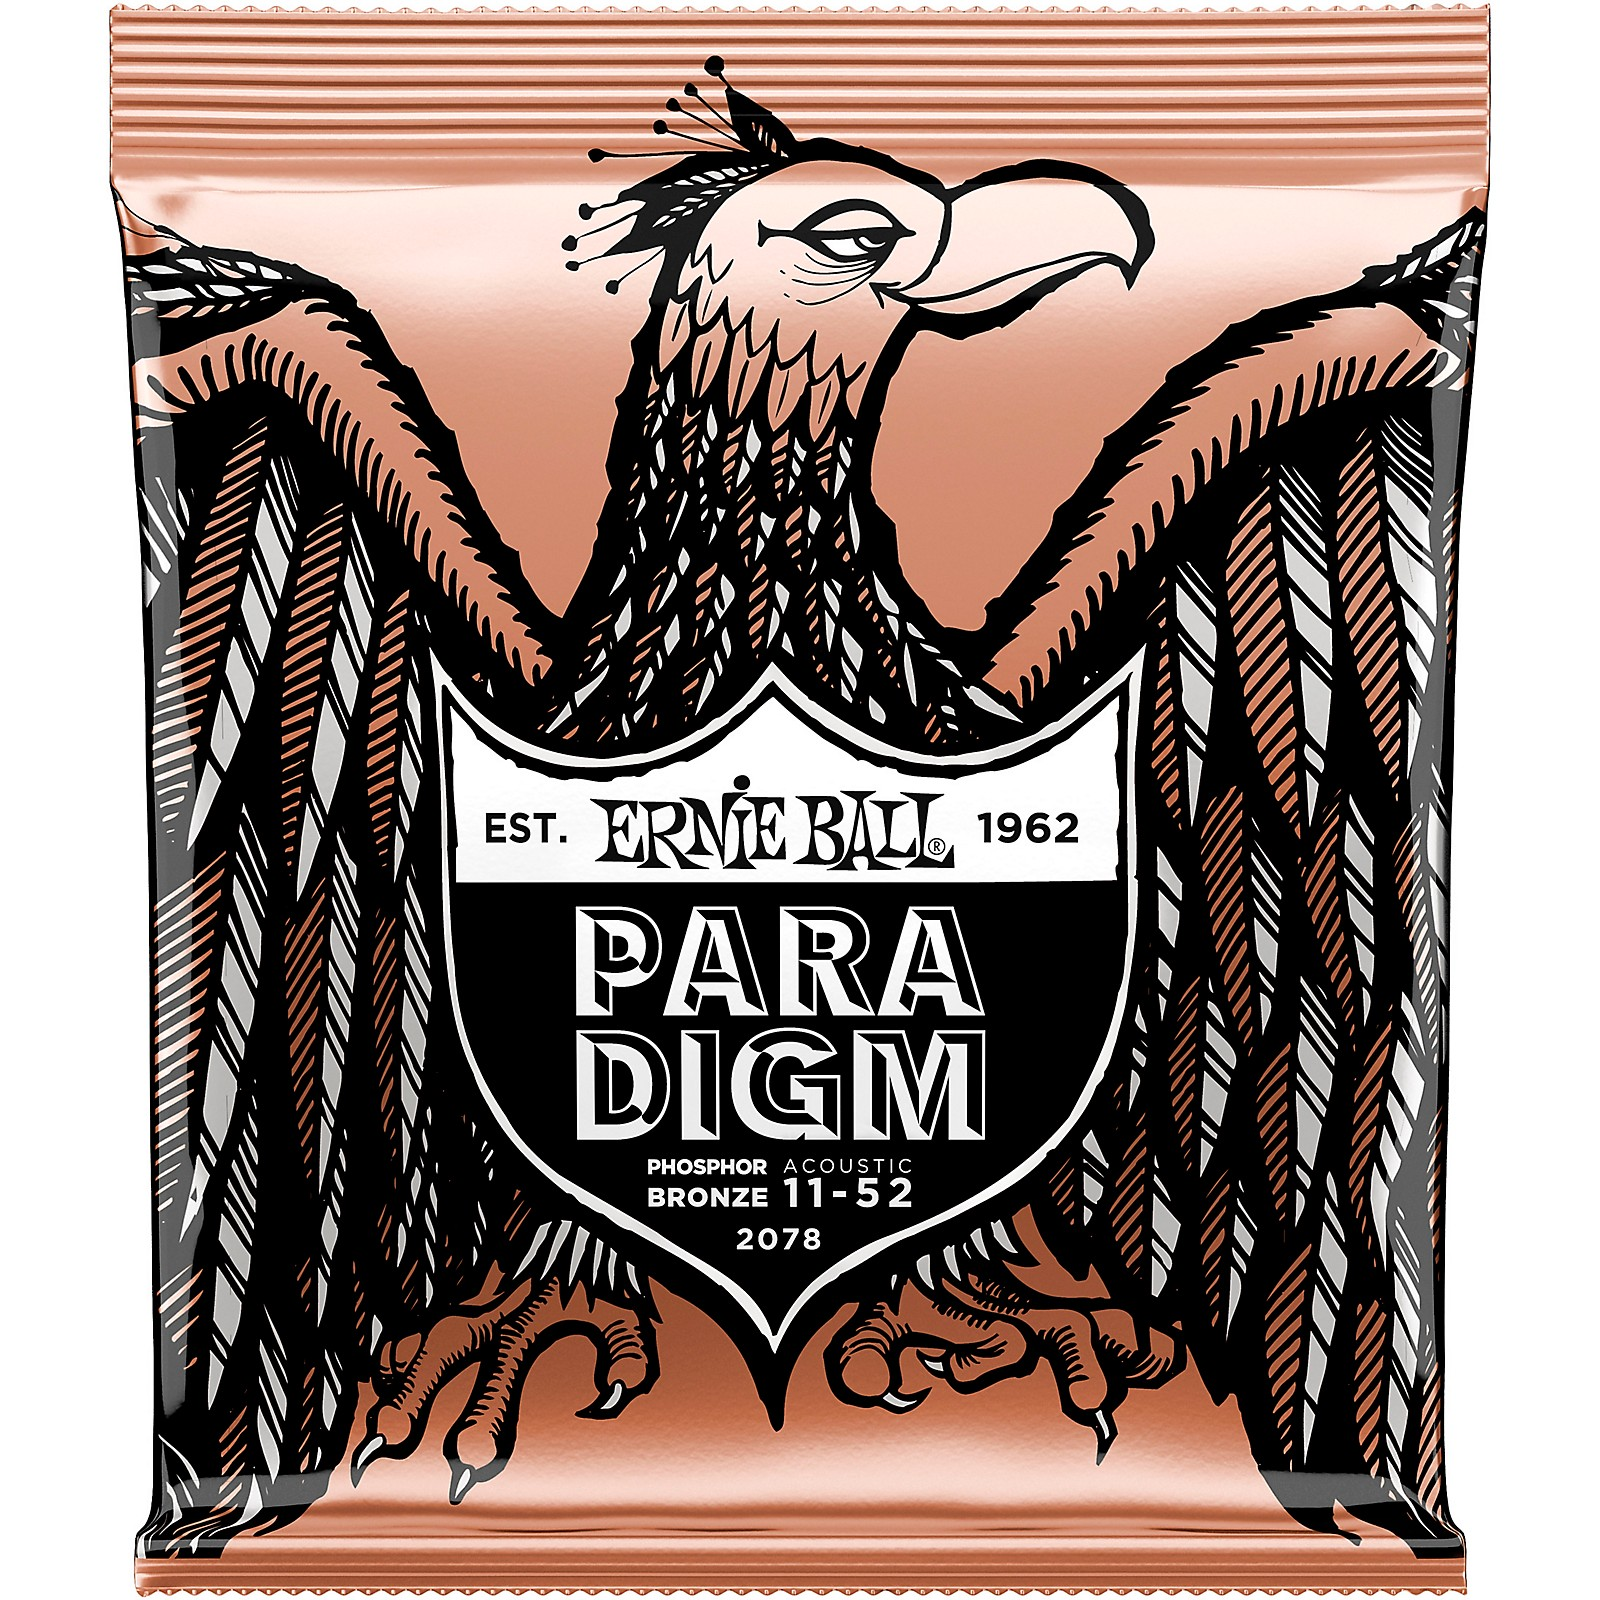 Ernie Ball Paradigm Phosphor Bronze Acoustic Guitar Strings Light